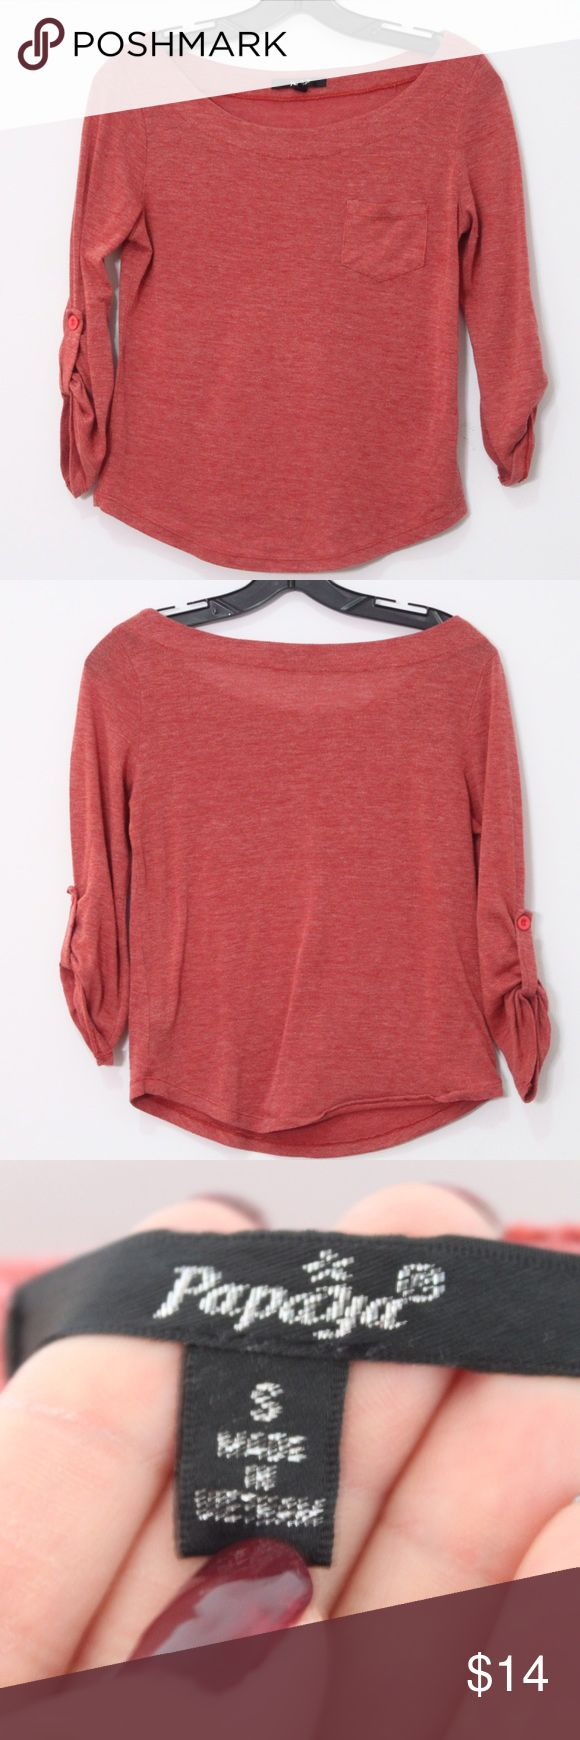 Papaya clothing red half sleeves top Red half sleeves top in great condition! Perfect for the spring time! papaya clothing  Tops